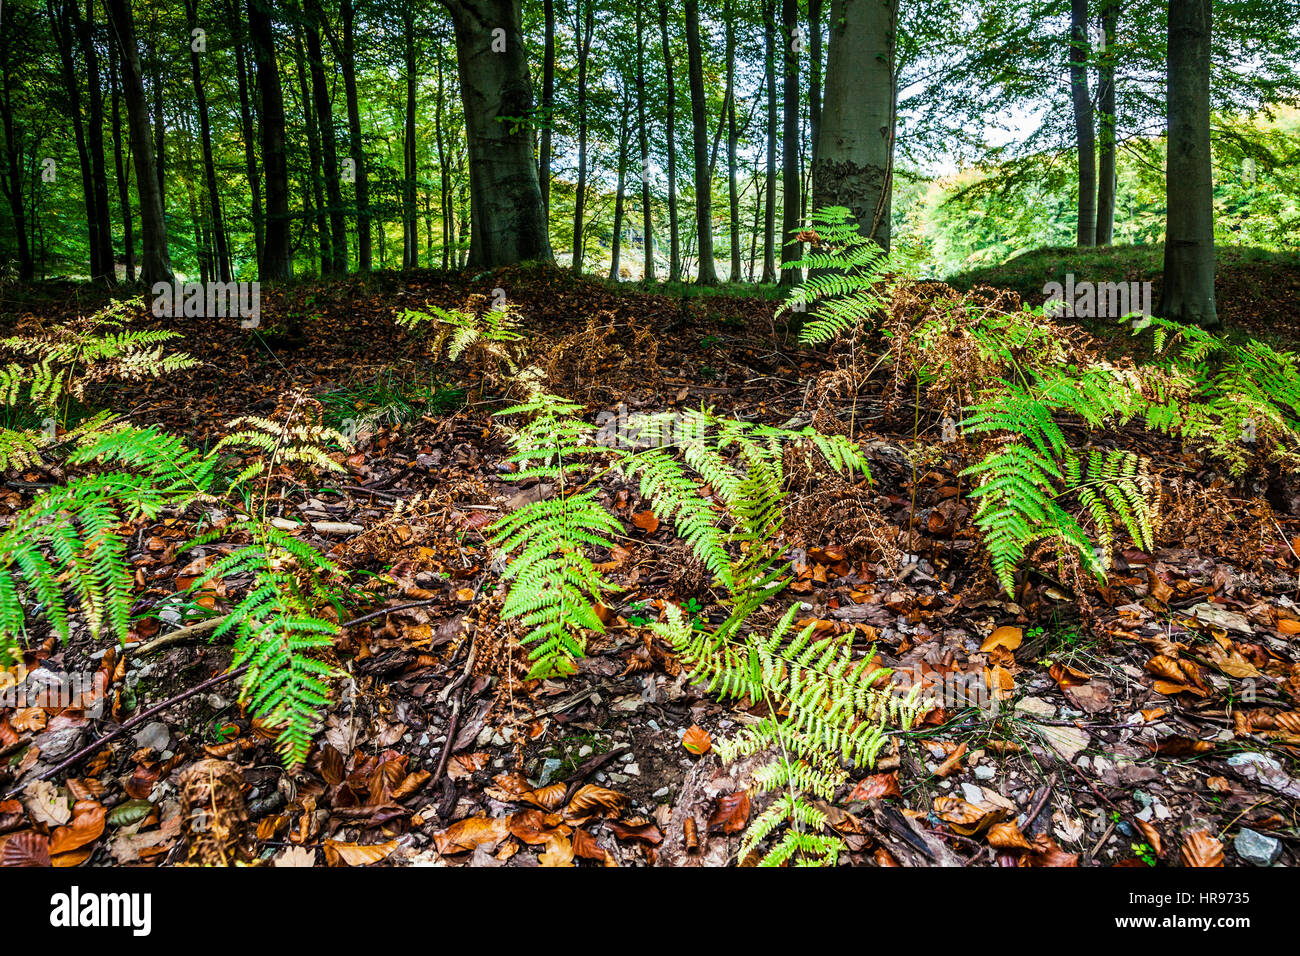 The Forest of Dean in Gloucestershire. - Stock Image